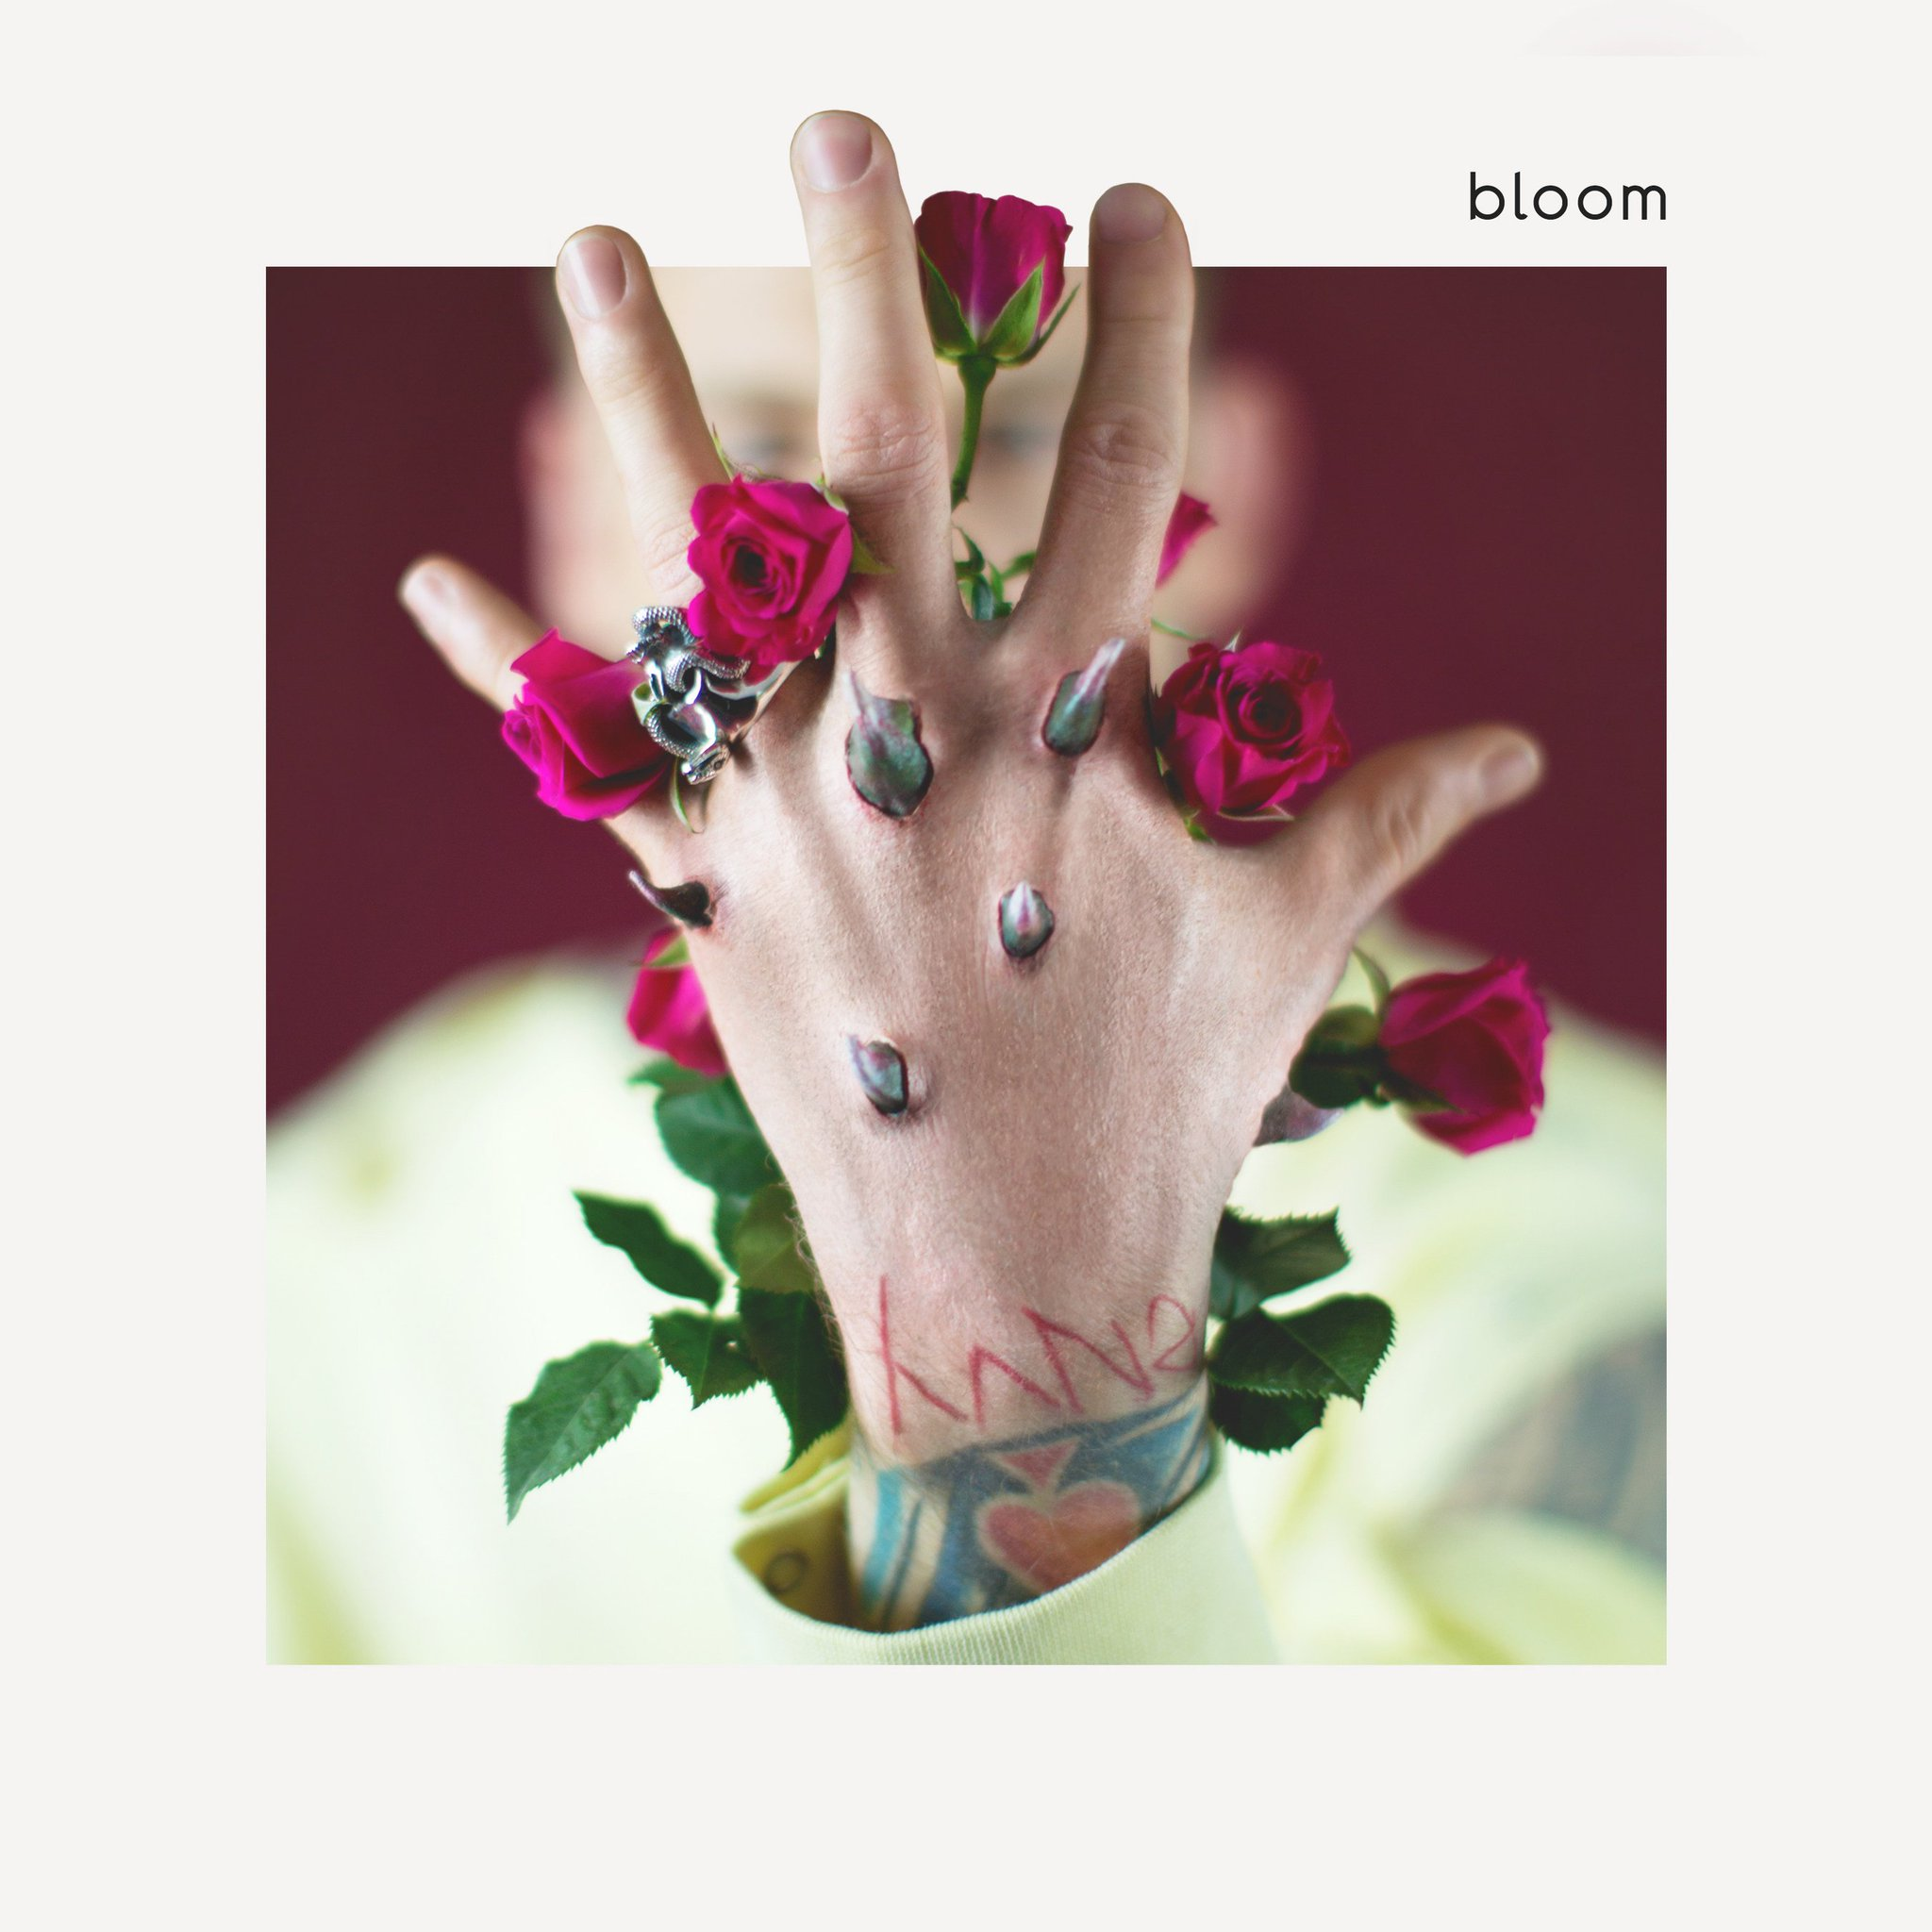 Can't wait to hit the road with @machinegunkelly, his new album #bloom is out now: https://t.co/BoW4lZsadD https://t.co/kxvdPeB9w5